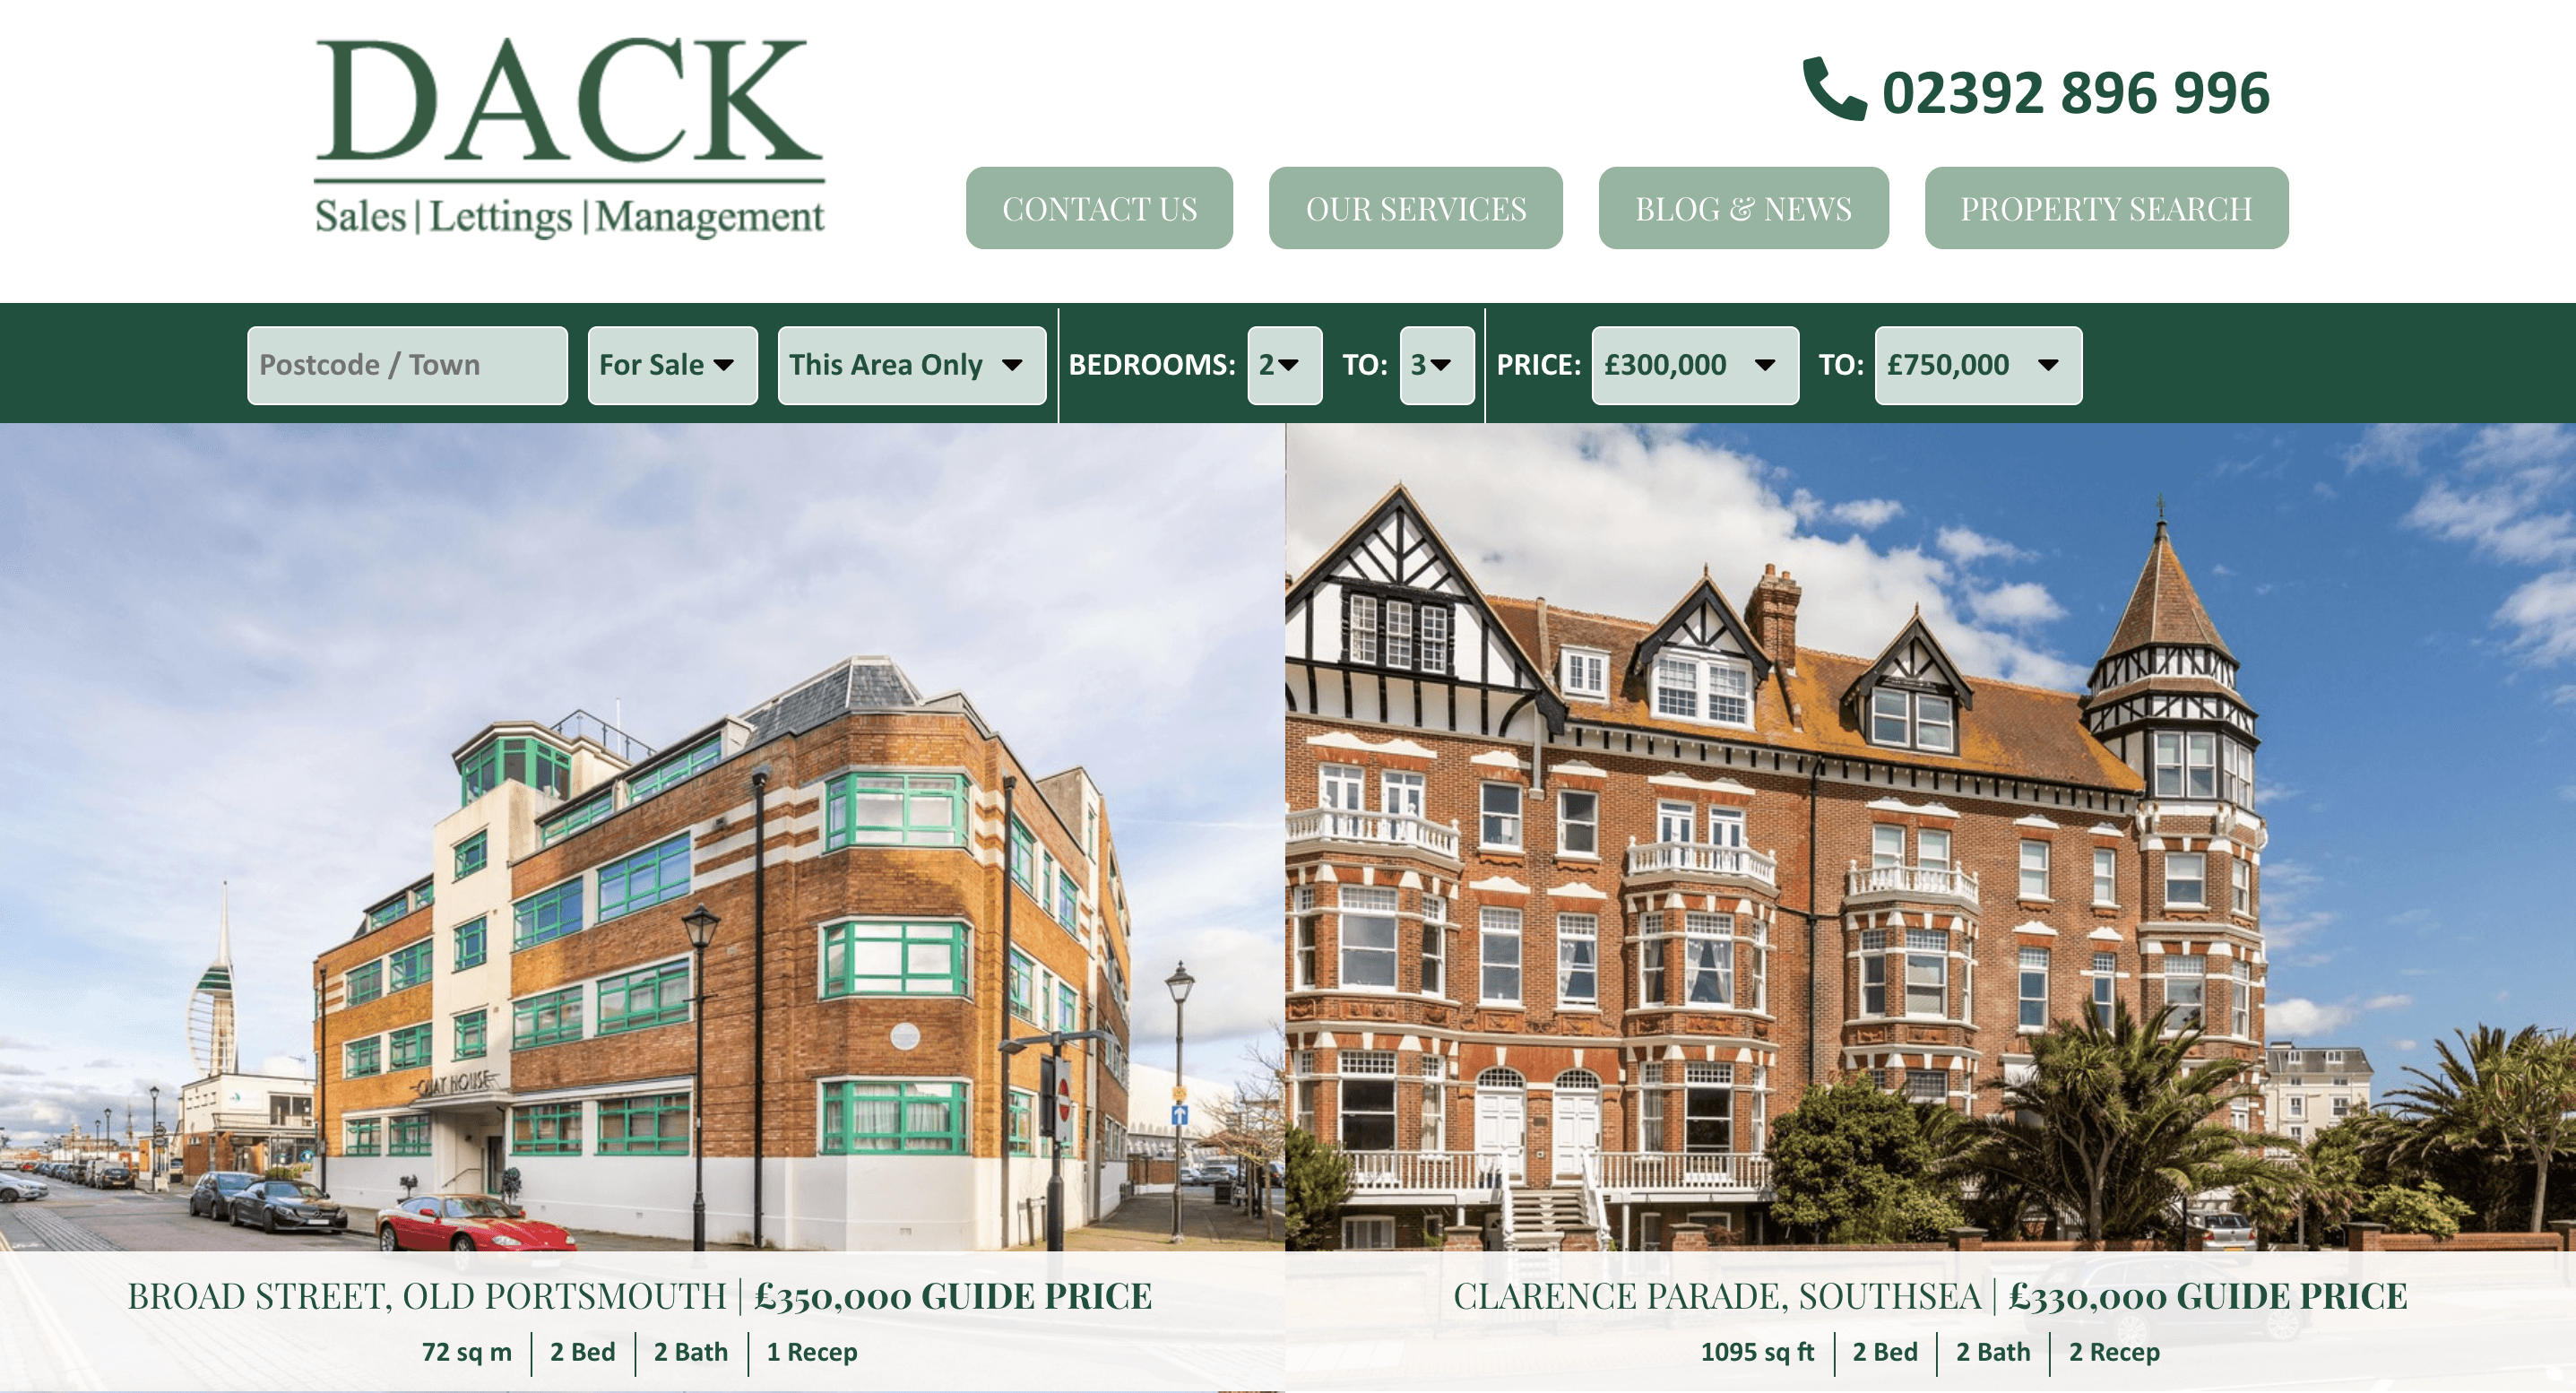 Dack Property Management Property Search